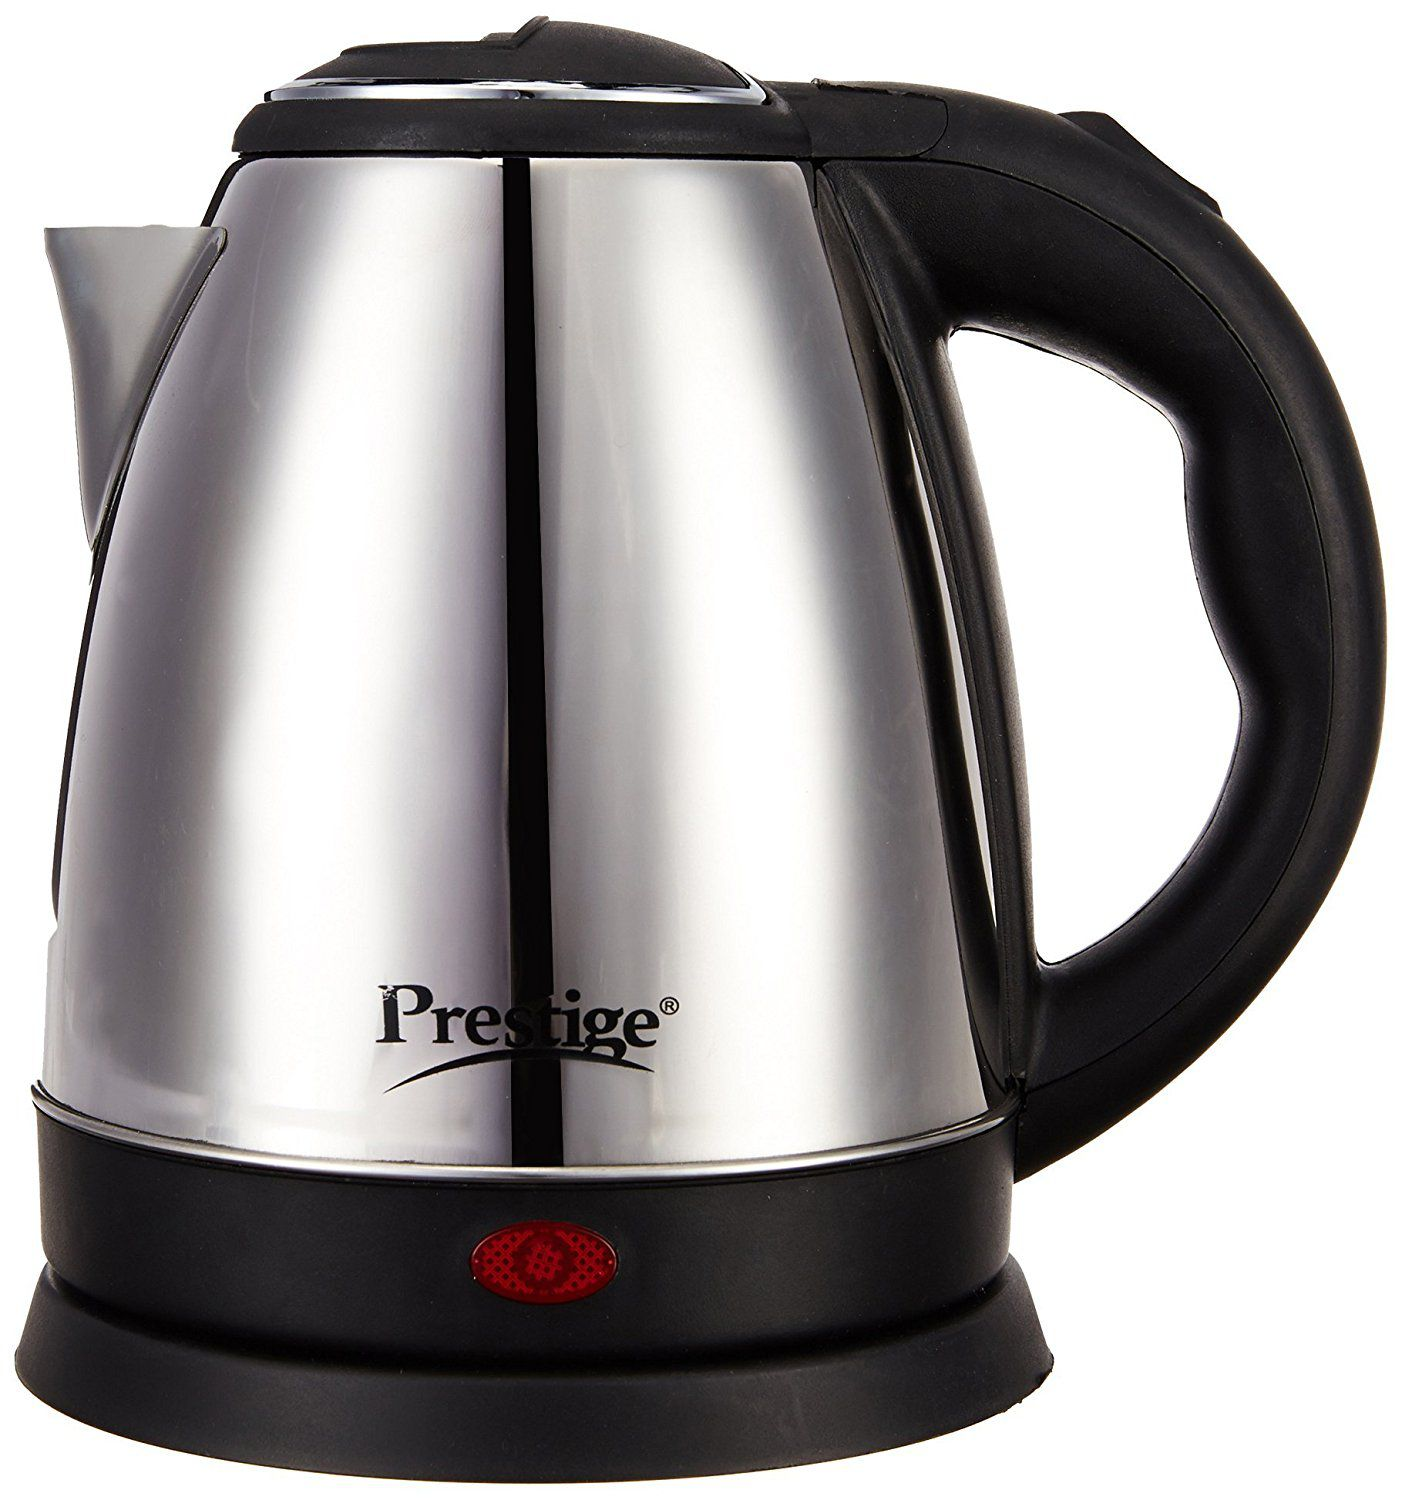 electric Kettle for pour over coffee